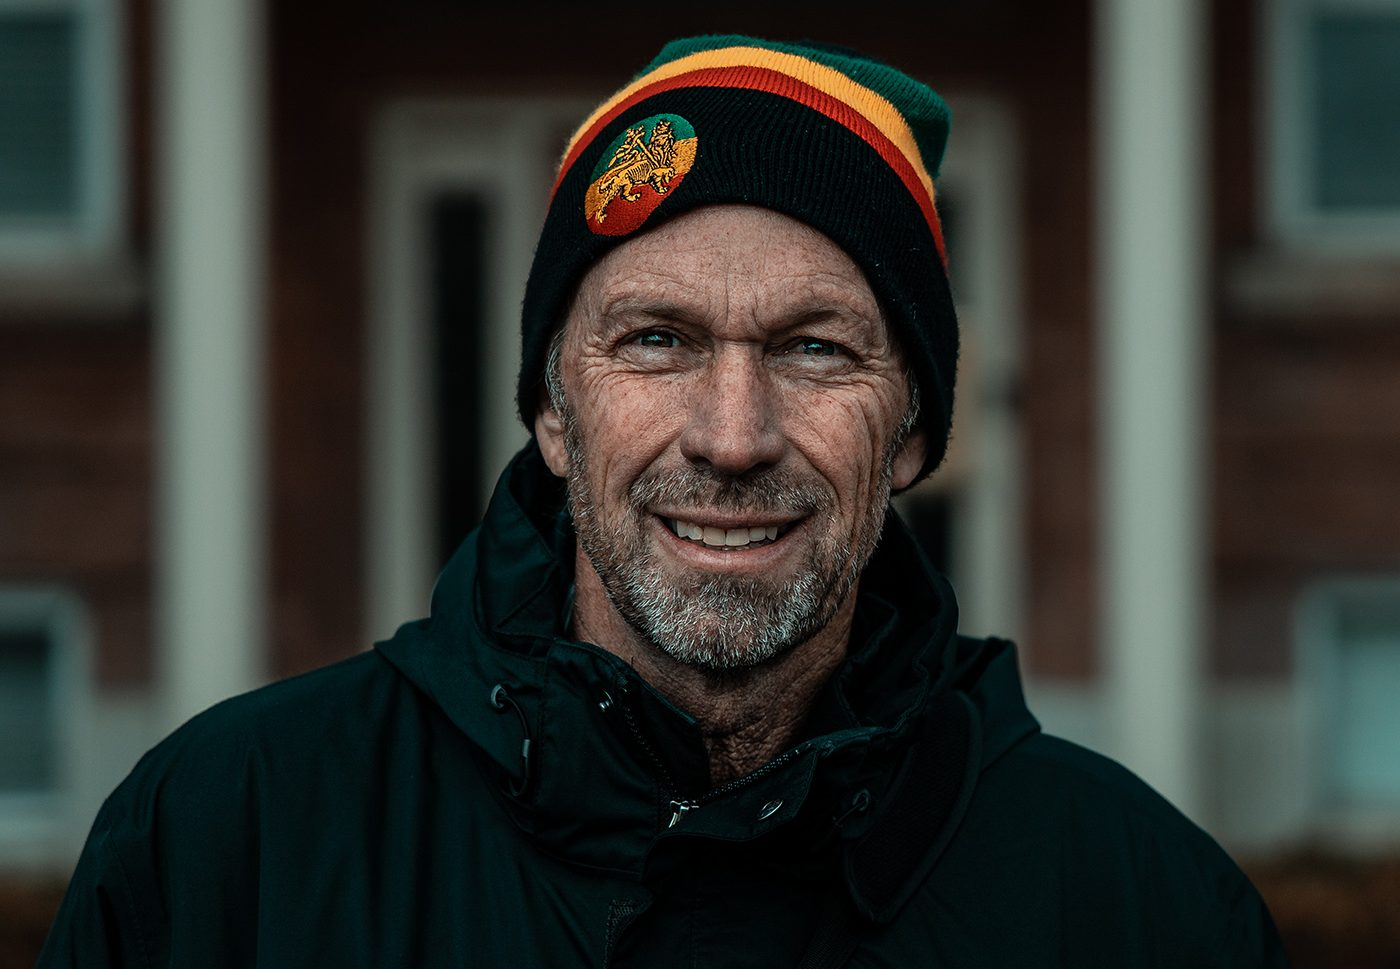 Rick Egan has spent years dedicated to capturing the lives of those in Salt Lake City.